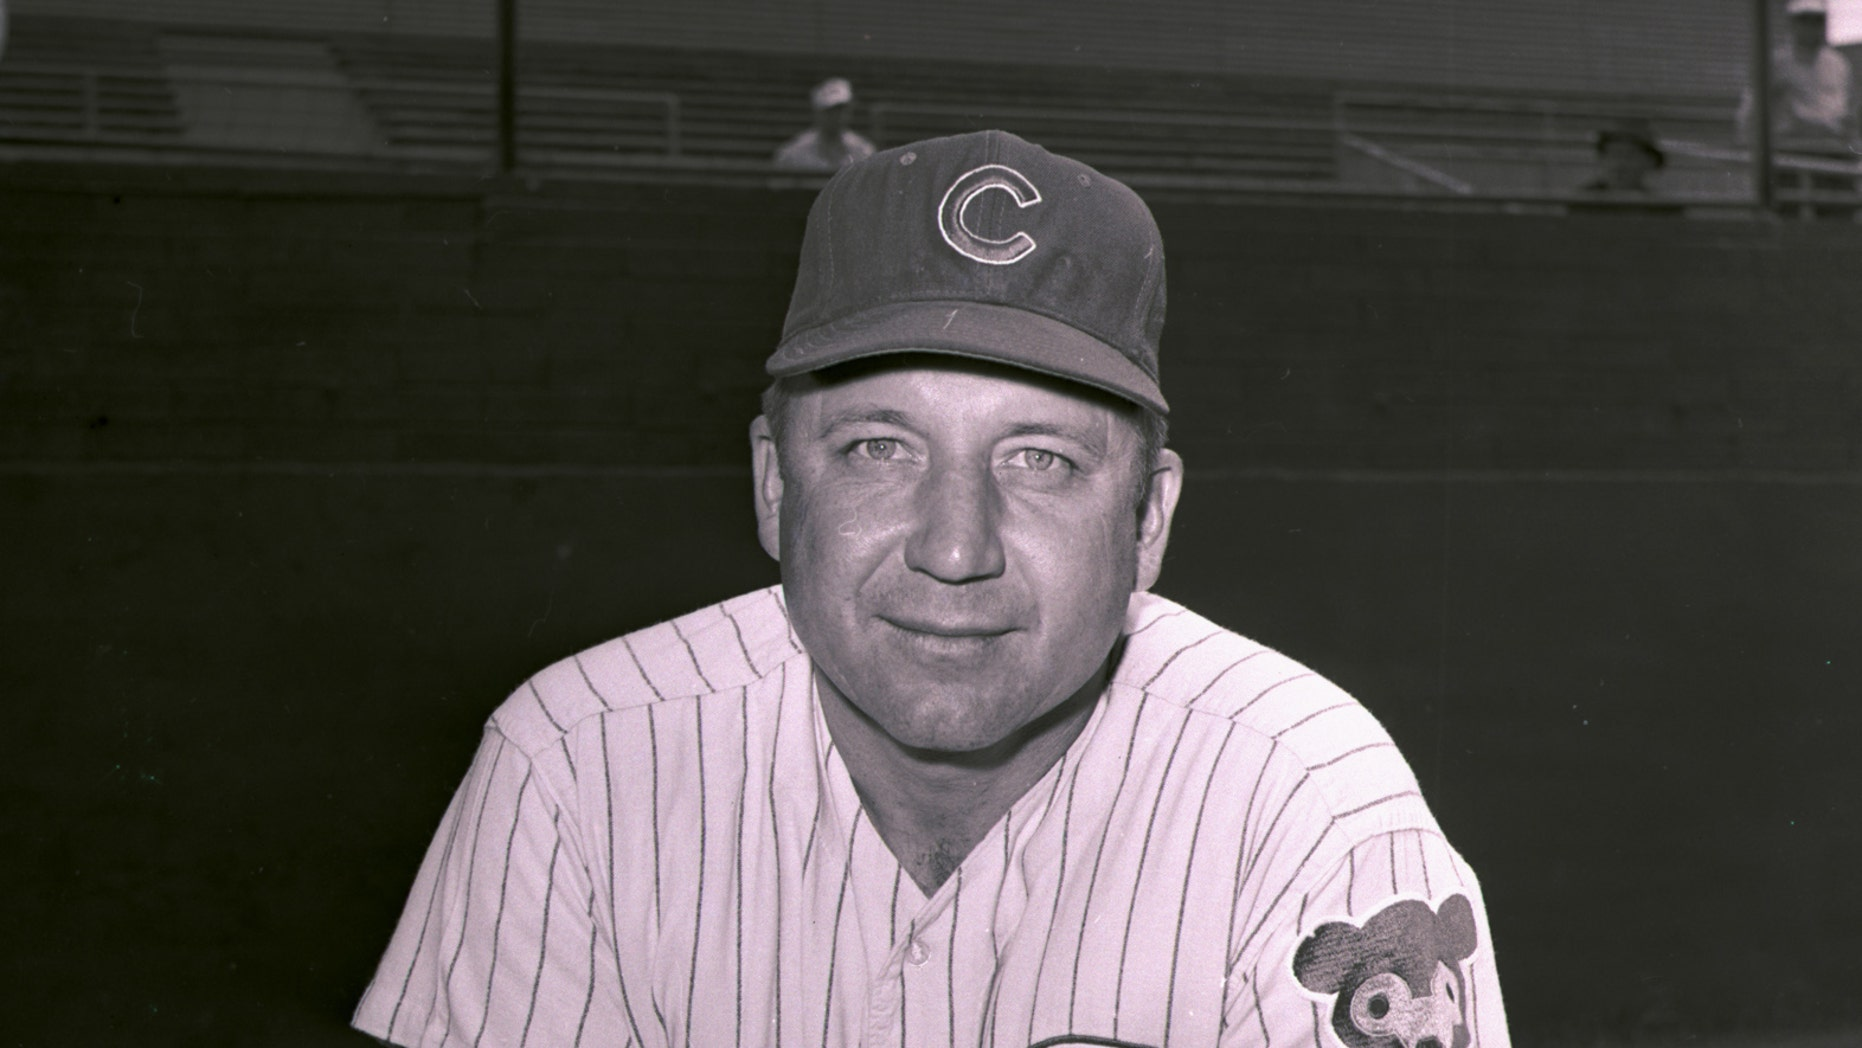 """FILE - This is a March 4, 1964, file photo showing Chicago Cubs coach Verlon Walker. Leigh Ann Young was only 3 when her father, Verlon """"Rube"""" Walker died, a Major League Baseball player whose life cut short by leukemia at the age of 42.  (AP Photo/File)"""